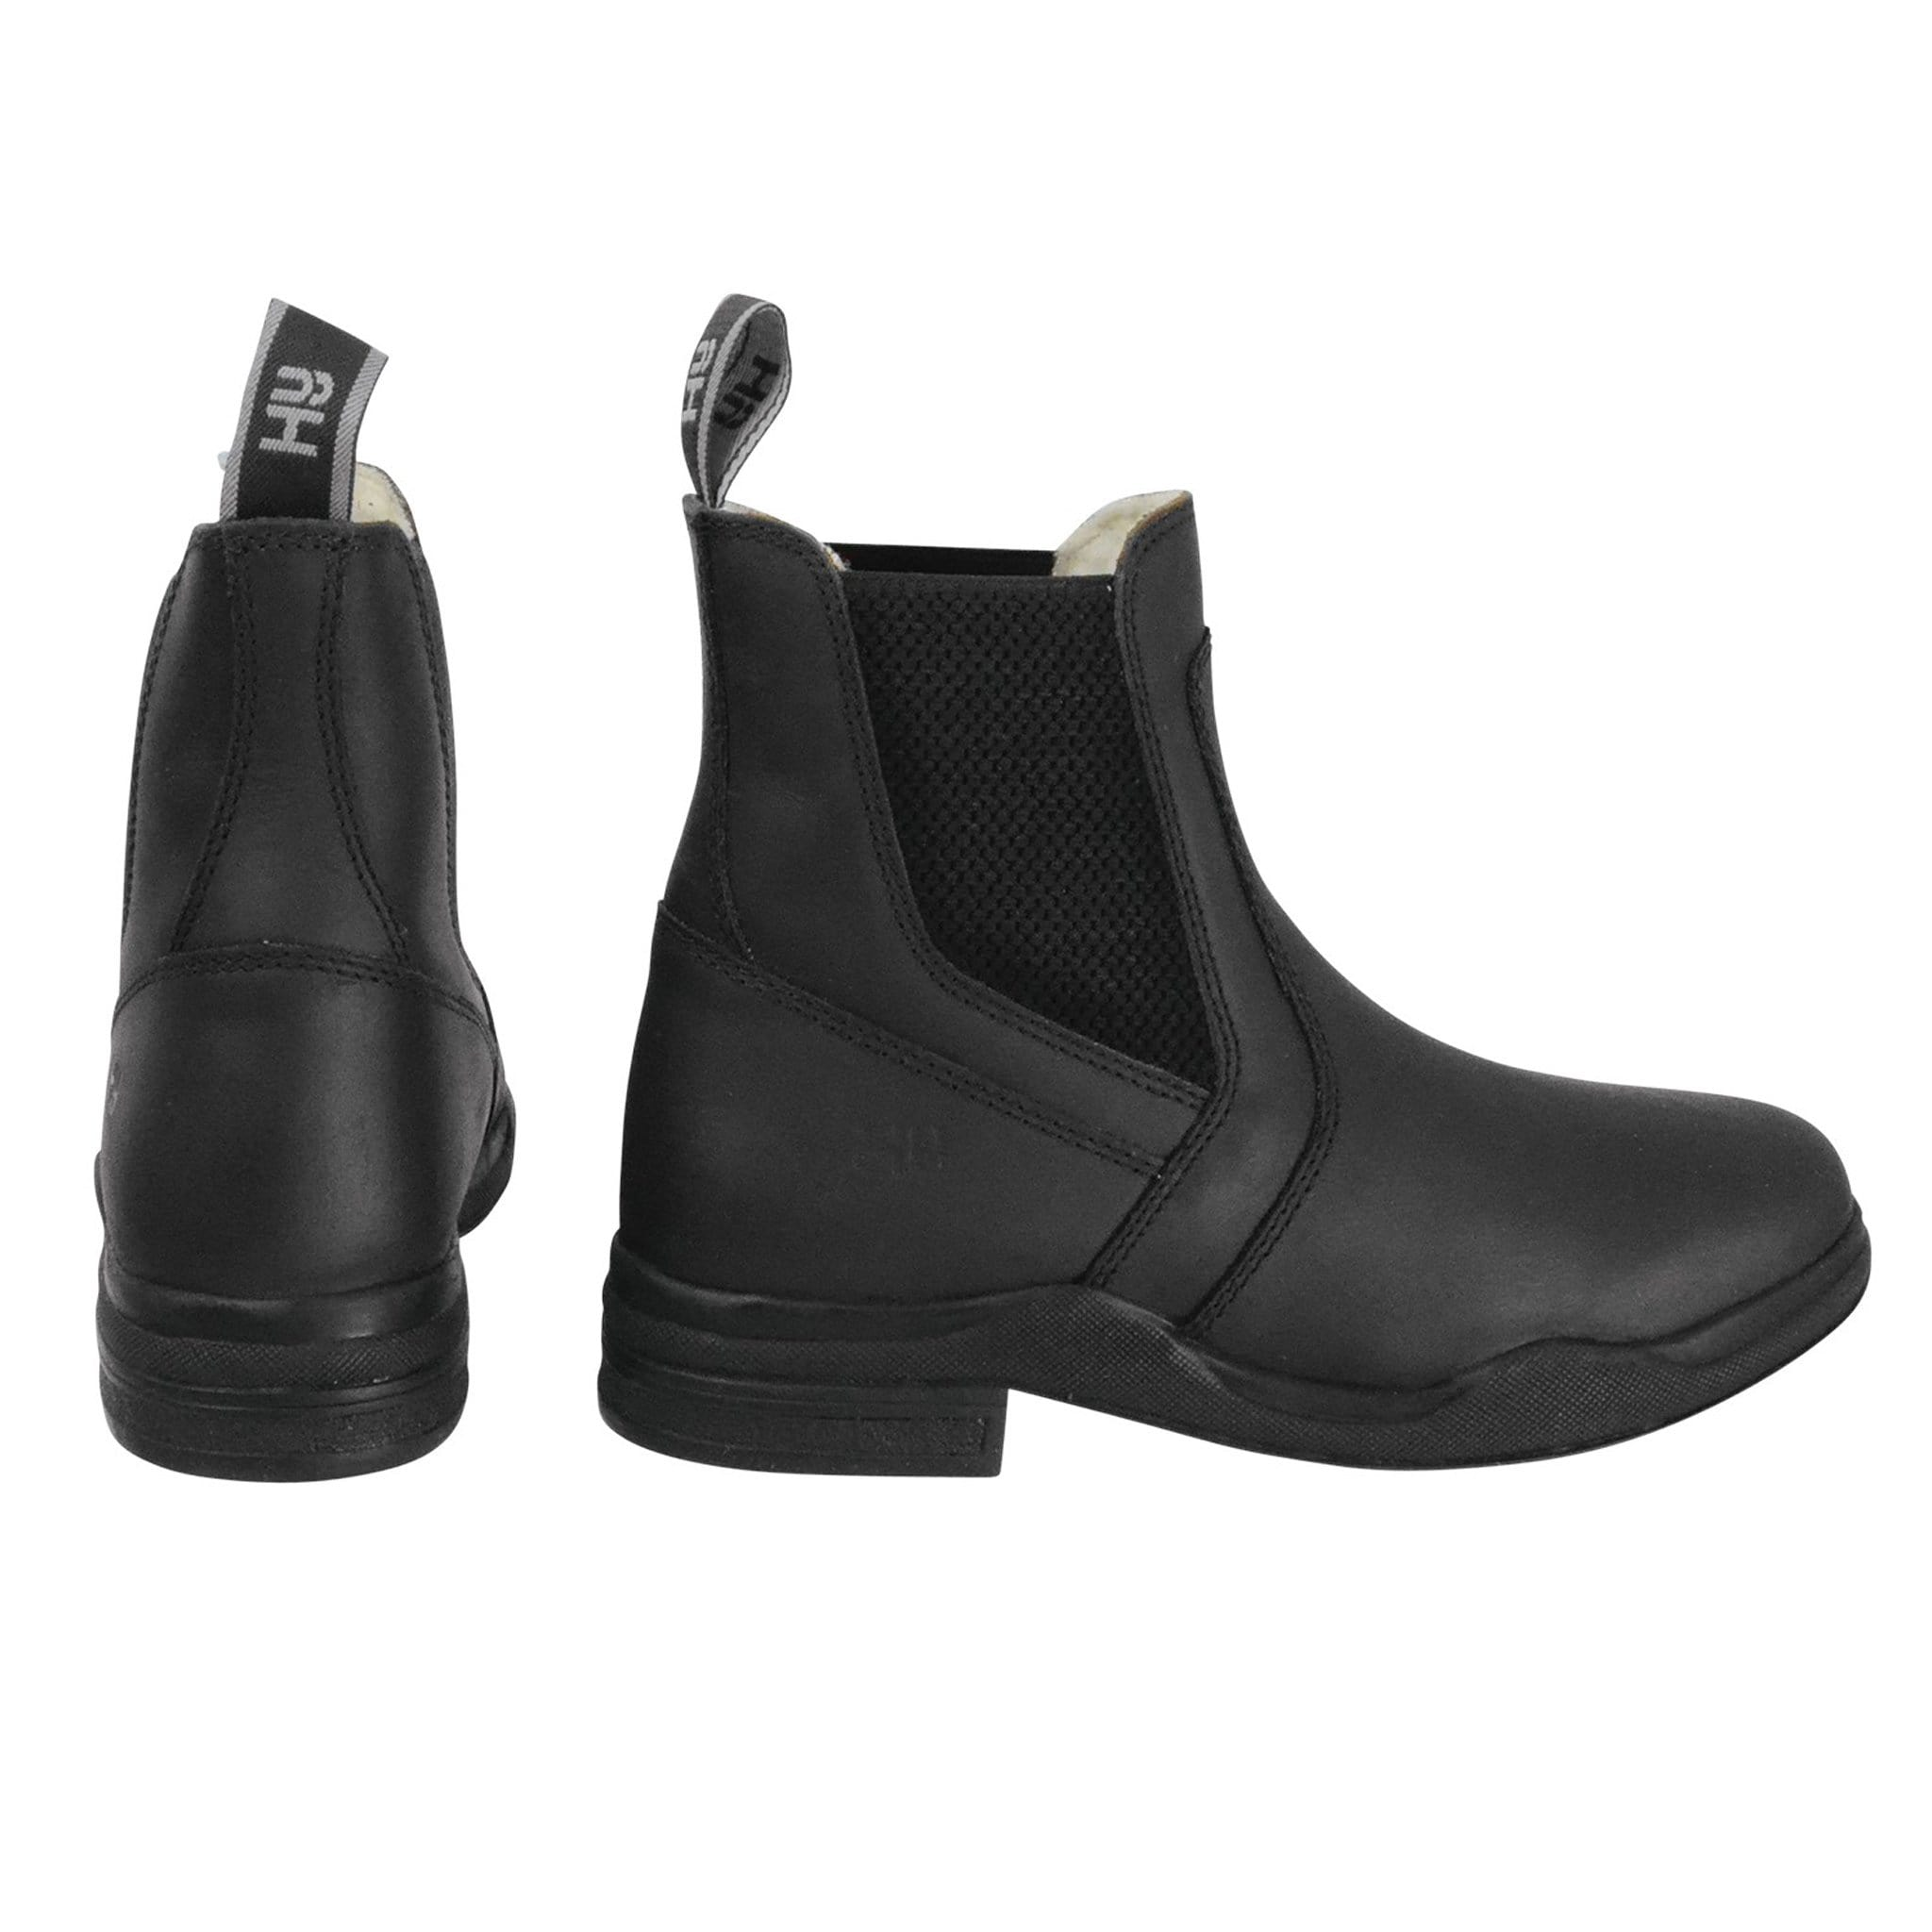 Hy Equestrian Fleece Lined Wax Leather Jodhpur Boots 29942 Black Side and Back View